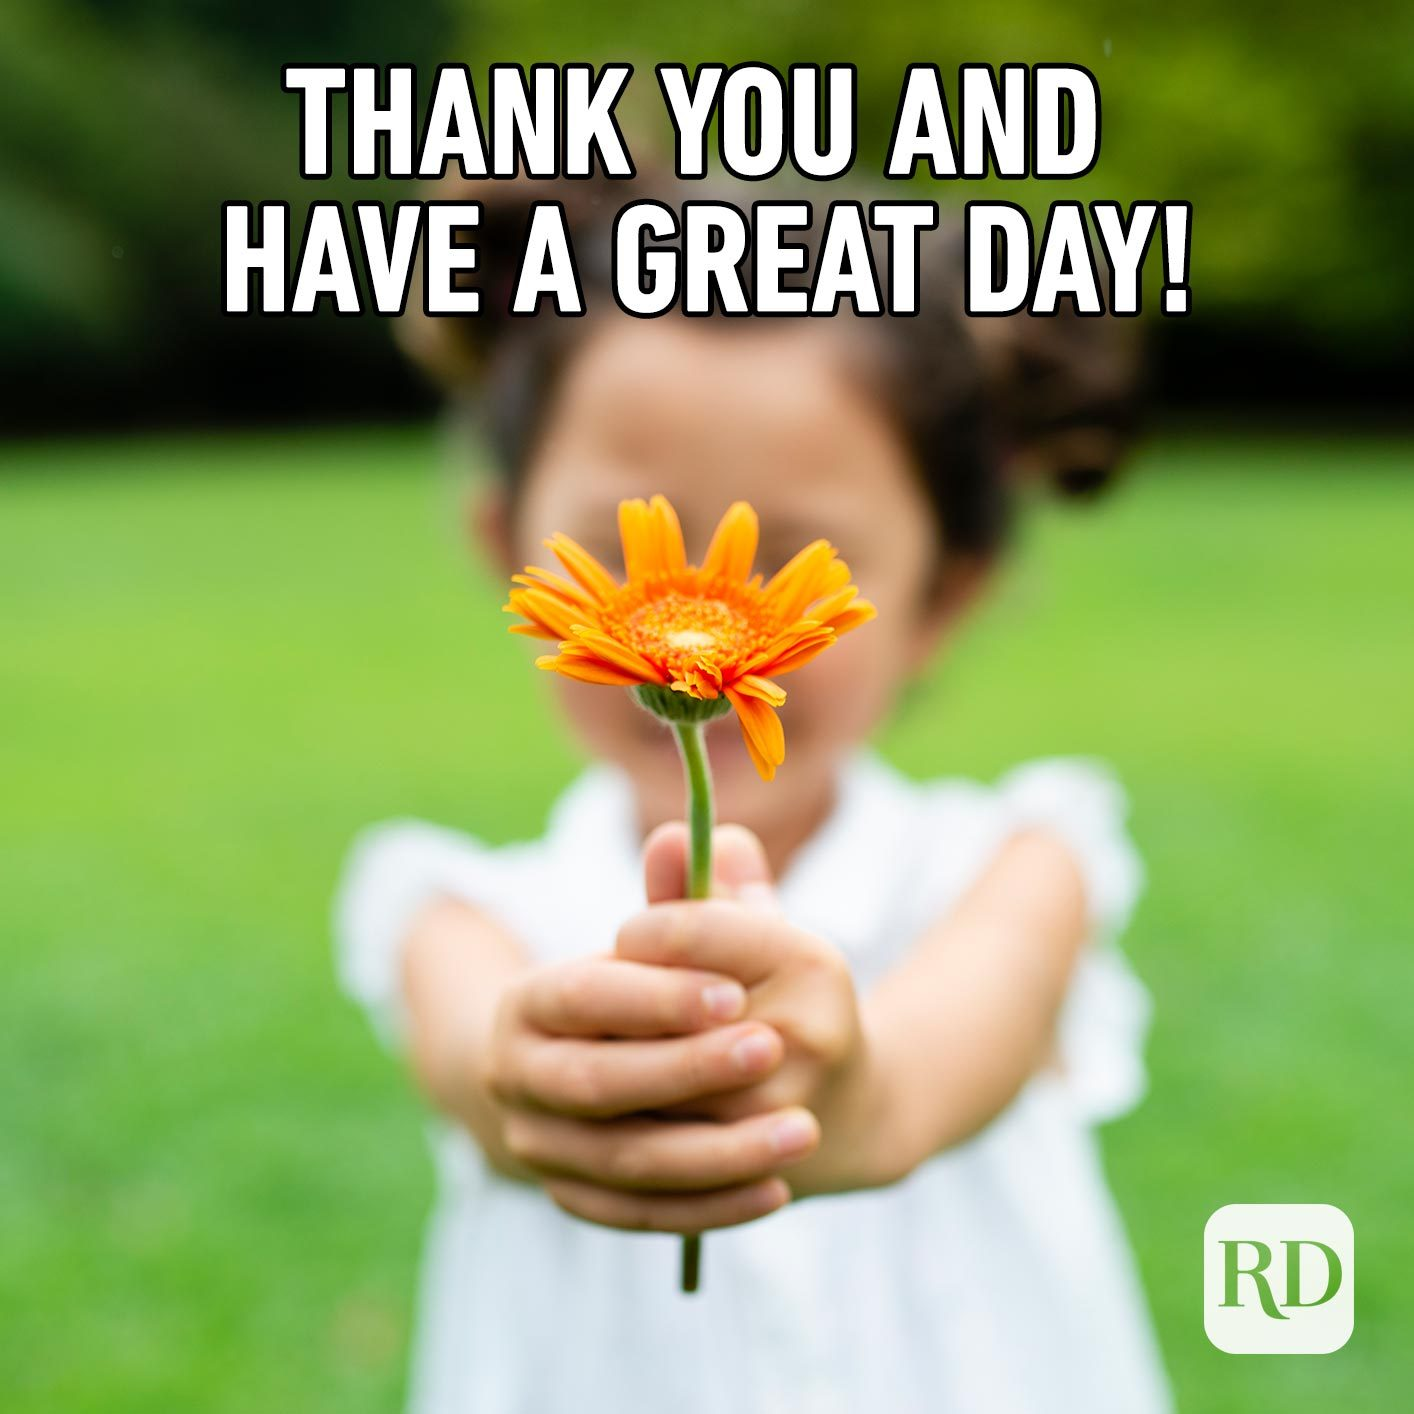 Girl offering a flower to the camera. Meme text: Thank you and have a great day!